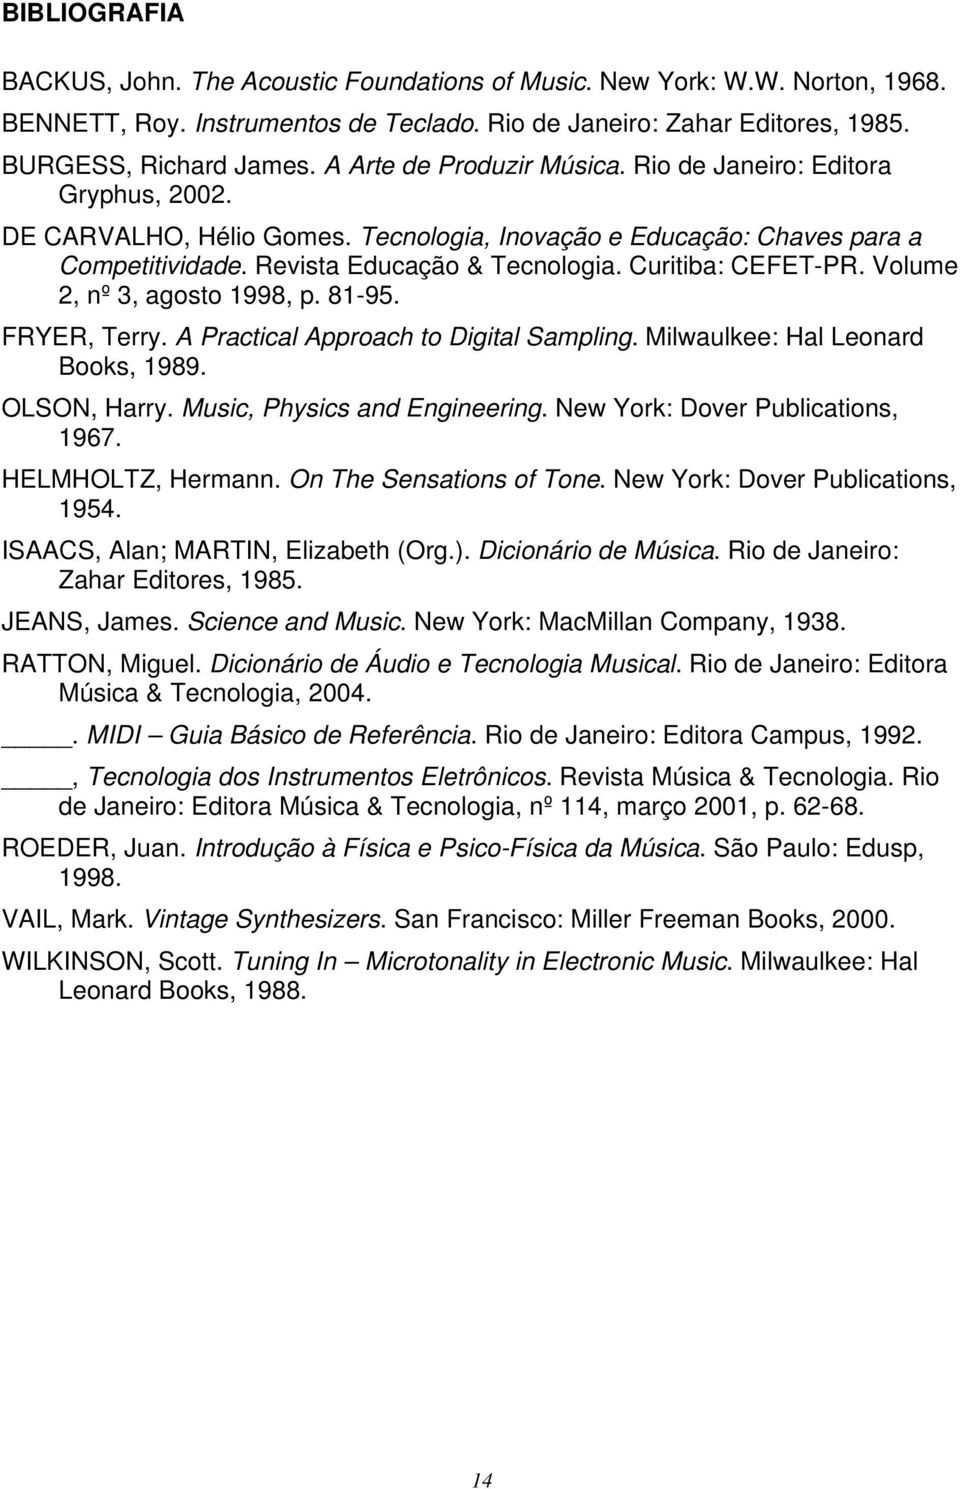 Curitiba: CEFET-PR. Volume 2, nº 3, agosto 1998, p. 81-95. FRYER, Terry. A Practical Approach to Digital Sampling. Milwaulkee: Hal Leonard Books, 1989. OLSON, Harry. Music, Physics and Engineering.